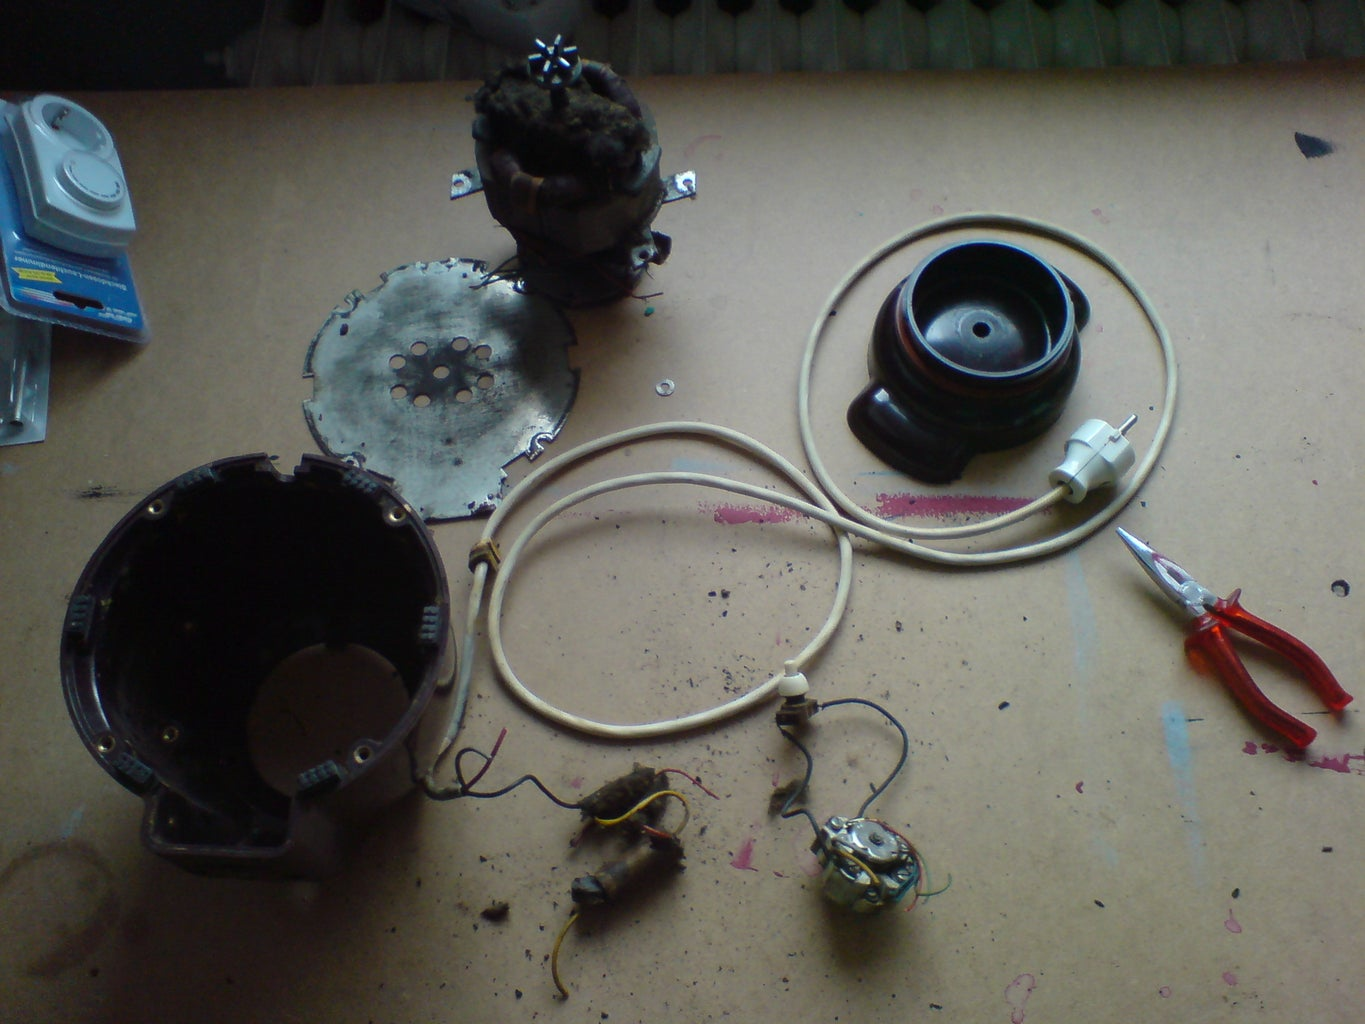 Disassembling and Cleaning